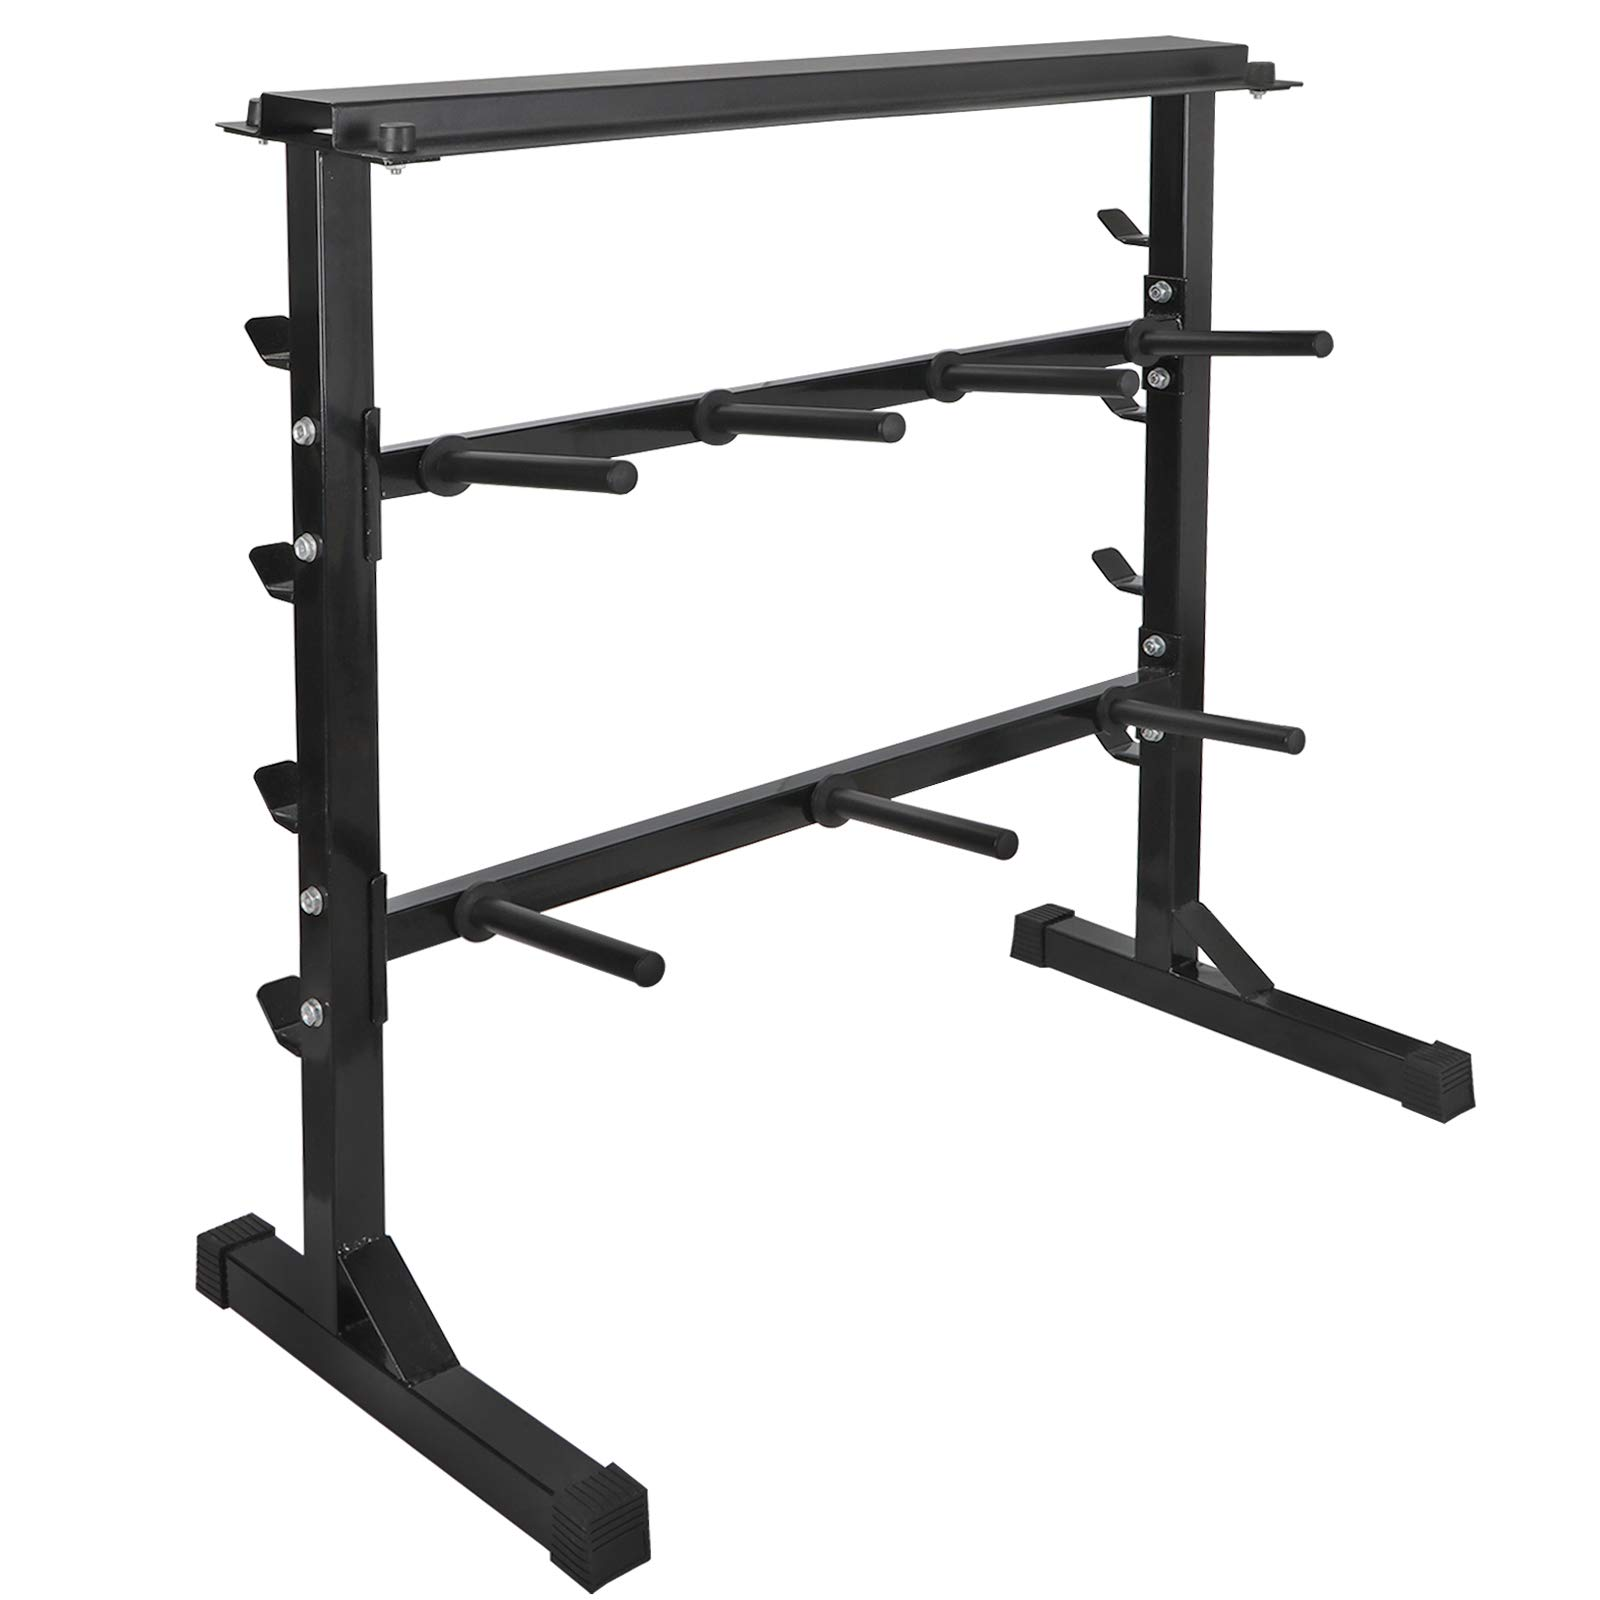 ZENSTYLE All-in-One Dumbbell Barbell Weight Plate Rack Multifunctional Weight Storage Stand with 1-Tier Dumbbell Shelf 2-Tier 7 Posts Olympic Weight Plate Stand and 4-Tier Barbell Rack